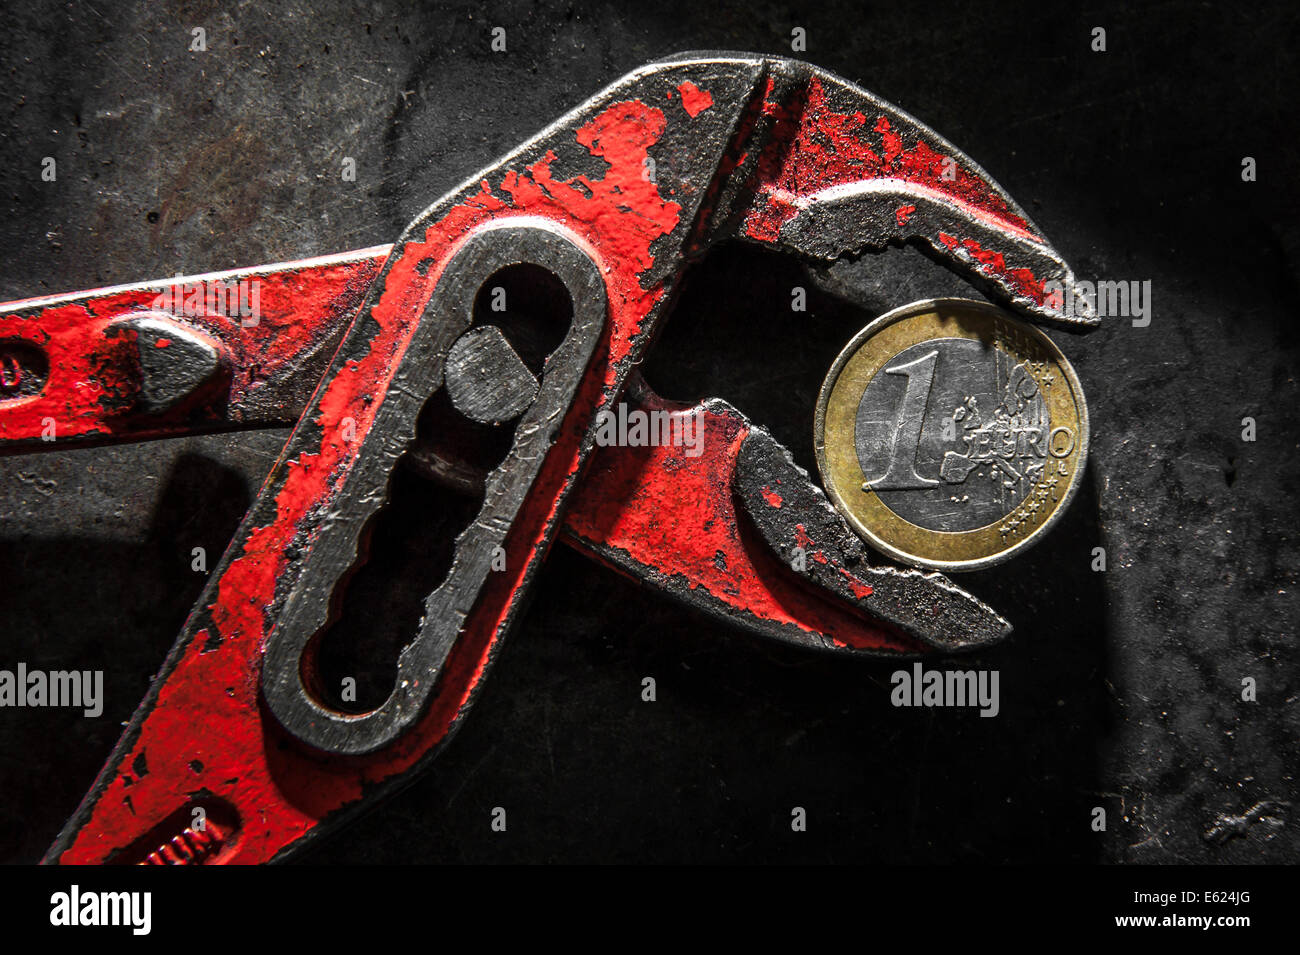 A Greek euro coin under pressure in a monkey wrench - Stock Image